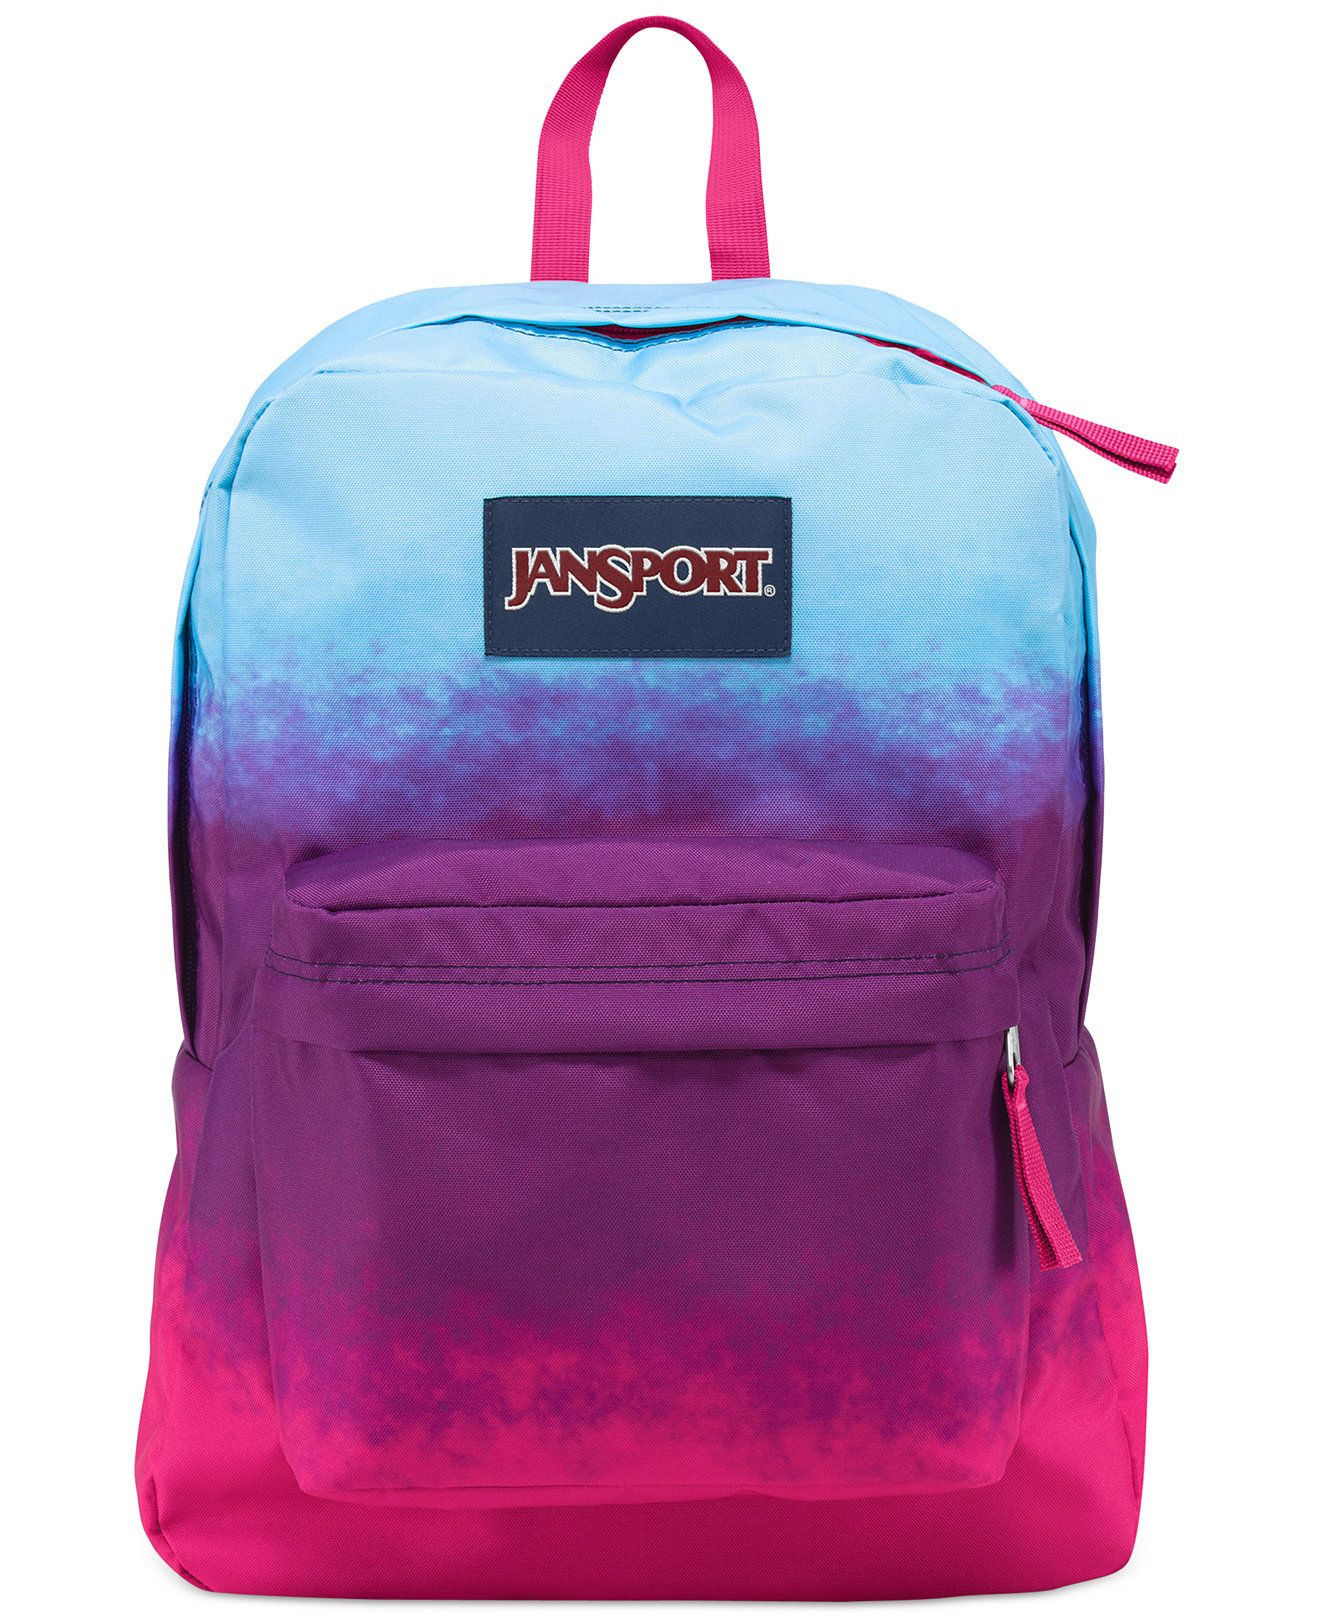 1b4718339534 How Much Is Jansport Backpack - Crazy Backpacks